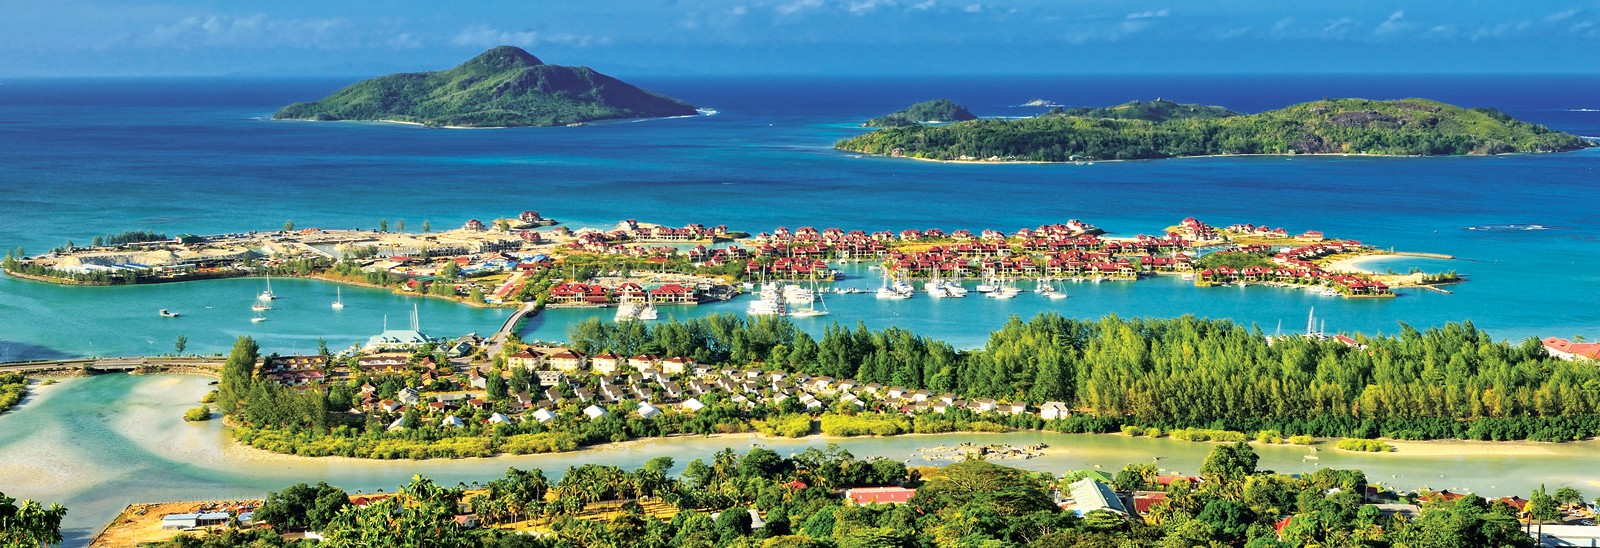 Eden Island: The chic side of the Seychelles